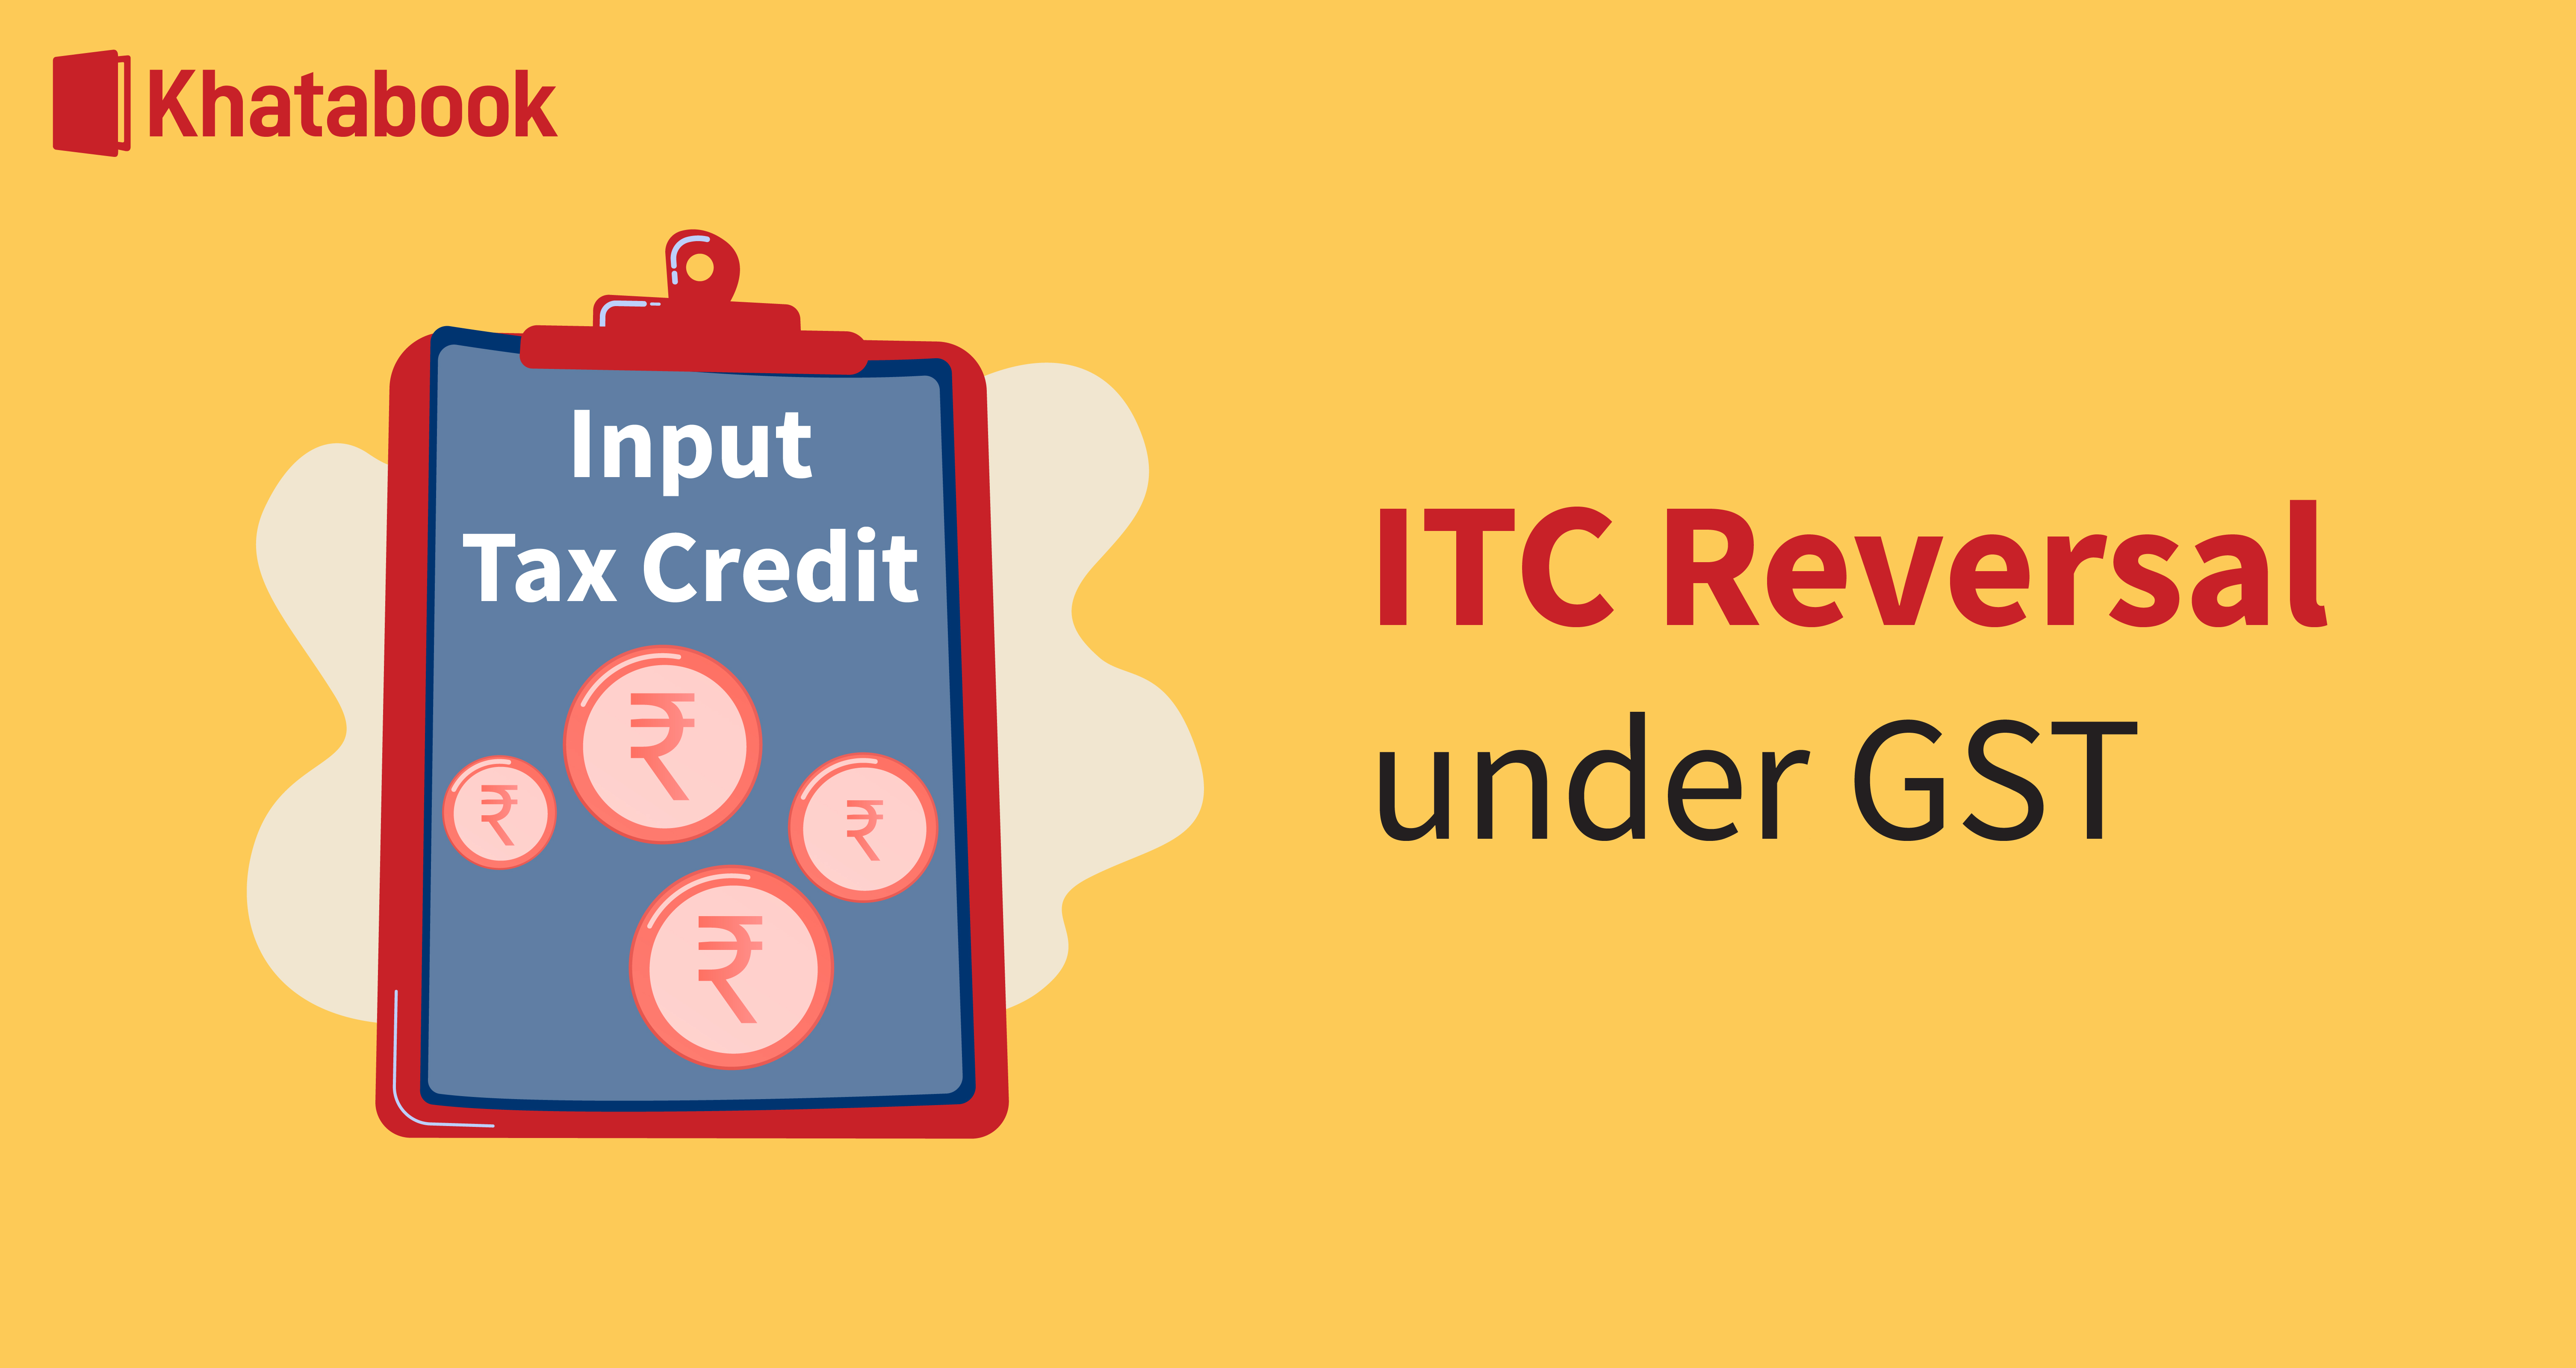 Know About ITC reversal under GST